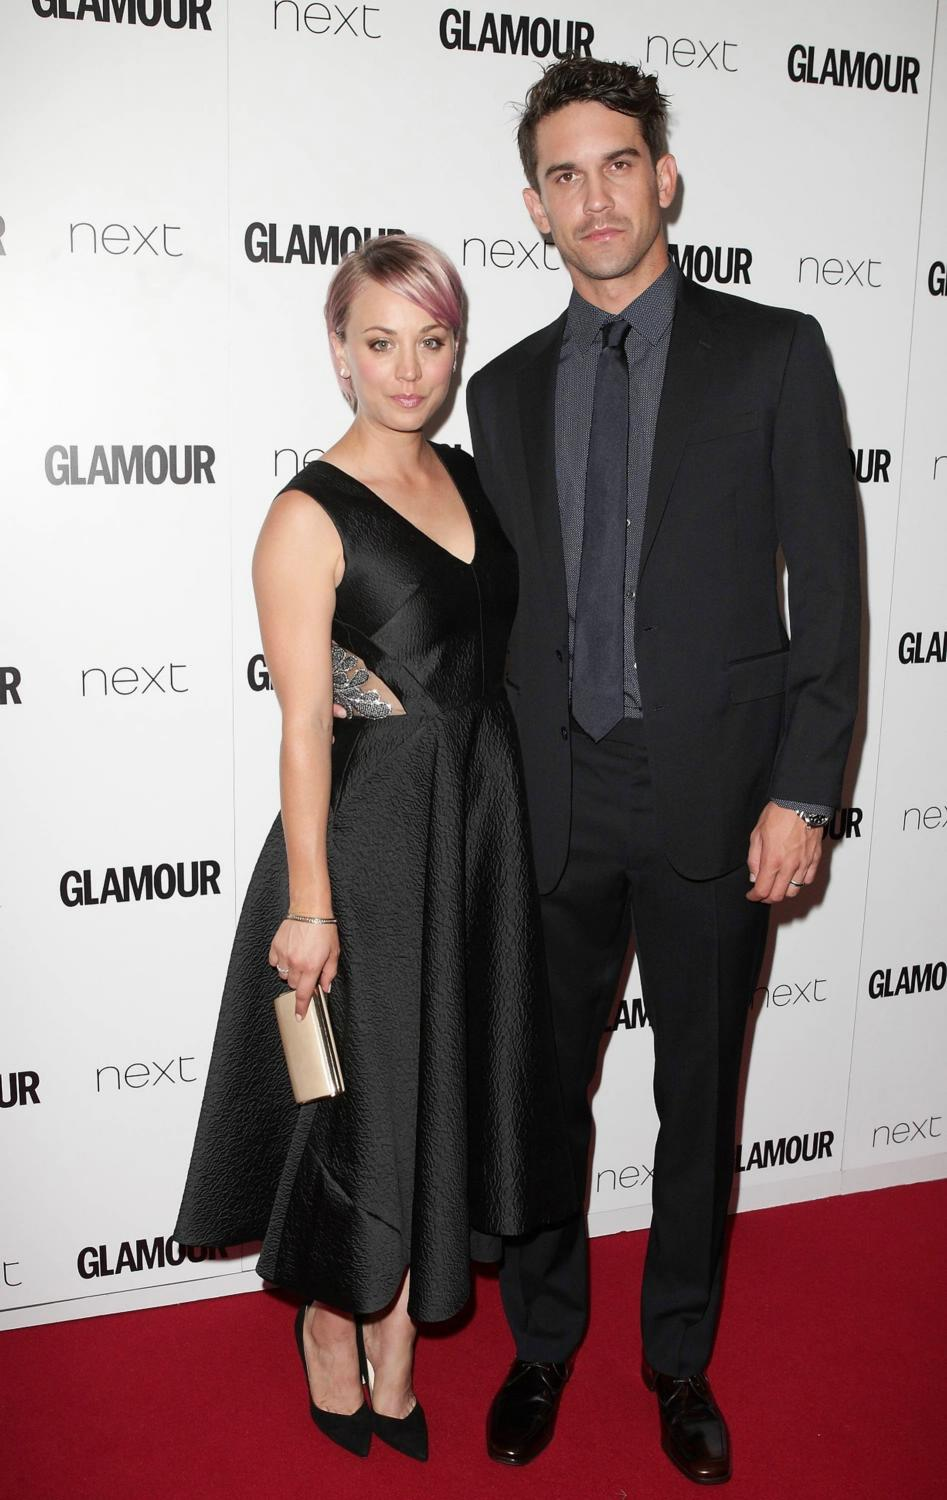 Kaley Cuoco and Ryan Sweeting at Glamour Women of the Year Awards